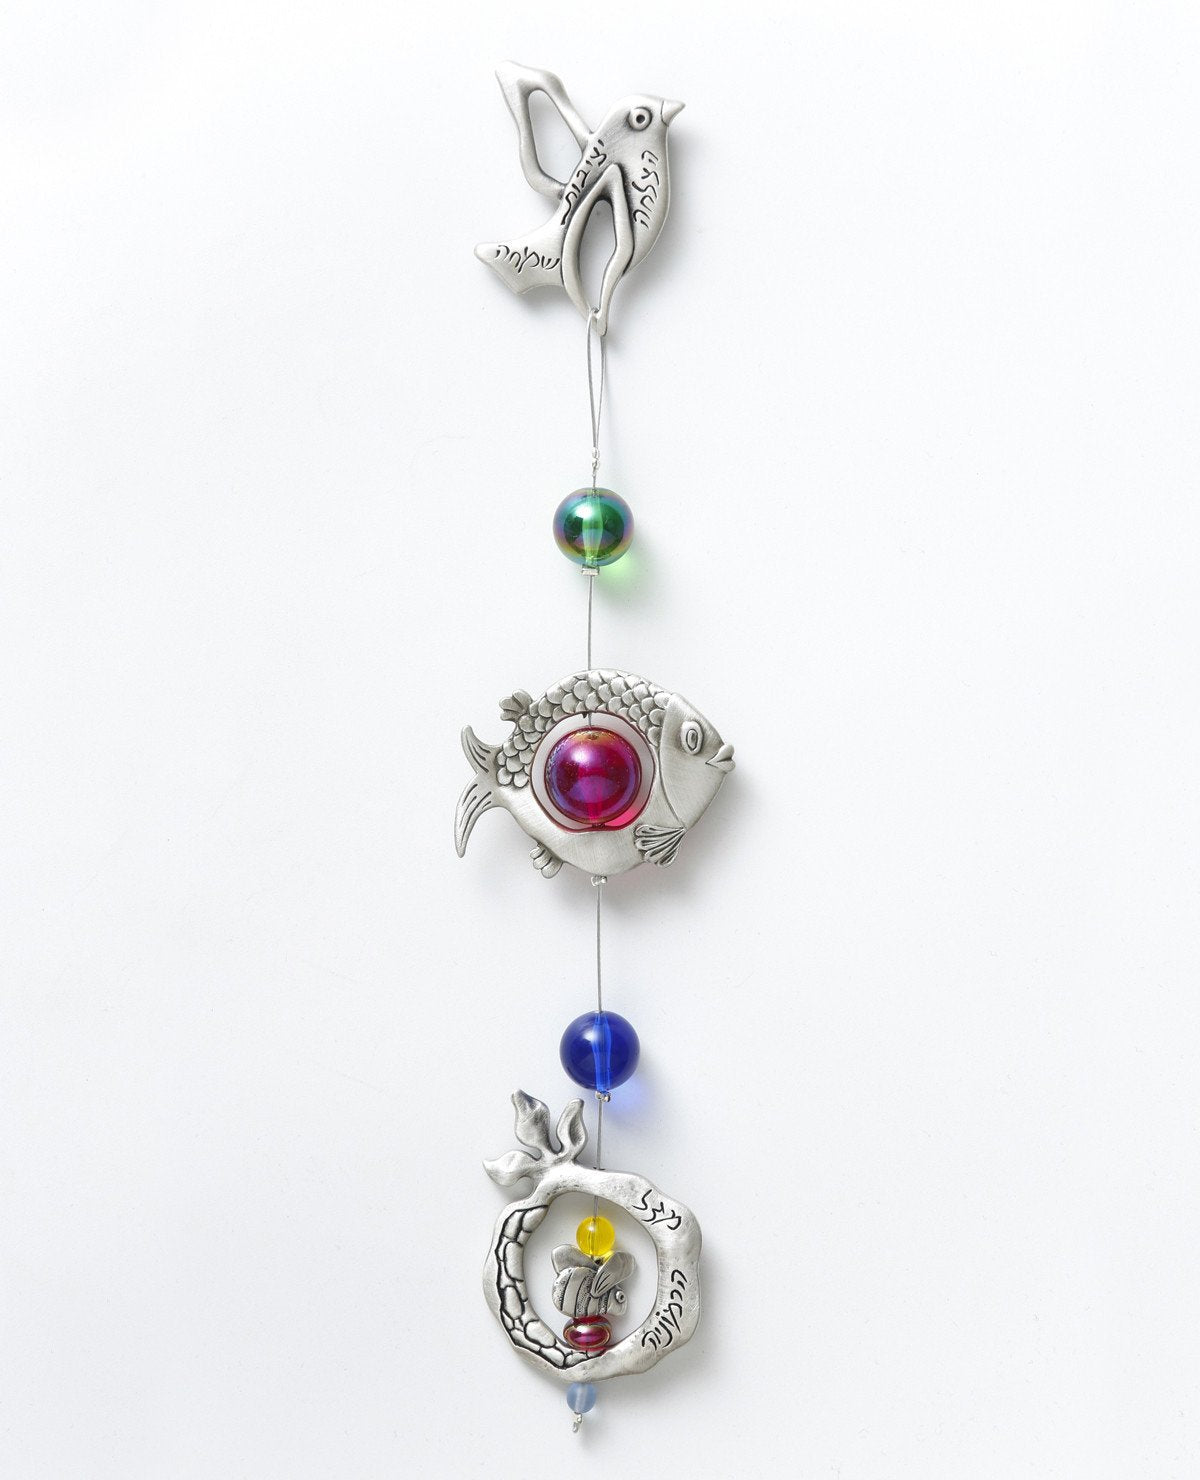 A delicate and beautiful hanging wall ornament, bringing together a few blessing motifs: a bird, a fish and a pomegranate, all hanging from a subtle silver string. The ornament is coated in sterling silver and is decorated with colorful beads. The bird and pomegranate are engraved with words of blessing for harmony, luck, success, stability, and joy. Makes a charming gift for any occasion and for anywhere in the house or office. It's so pleasant to gaze at this lovely ornament and smile every moment with gr